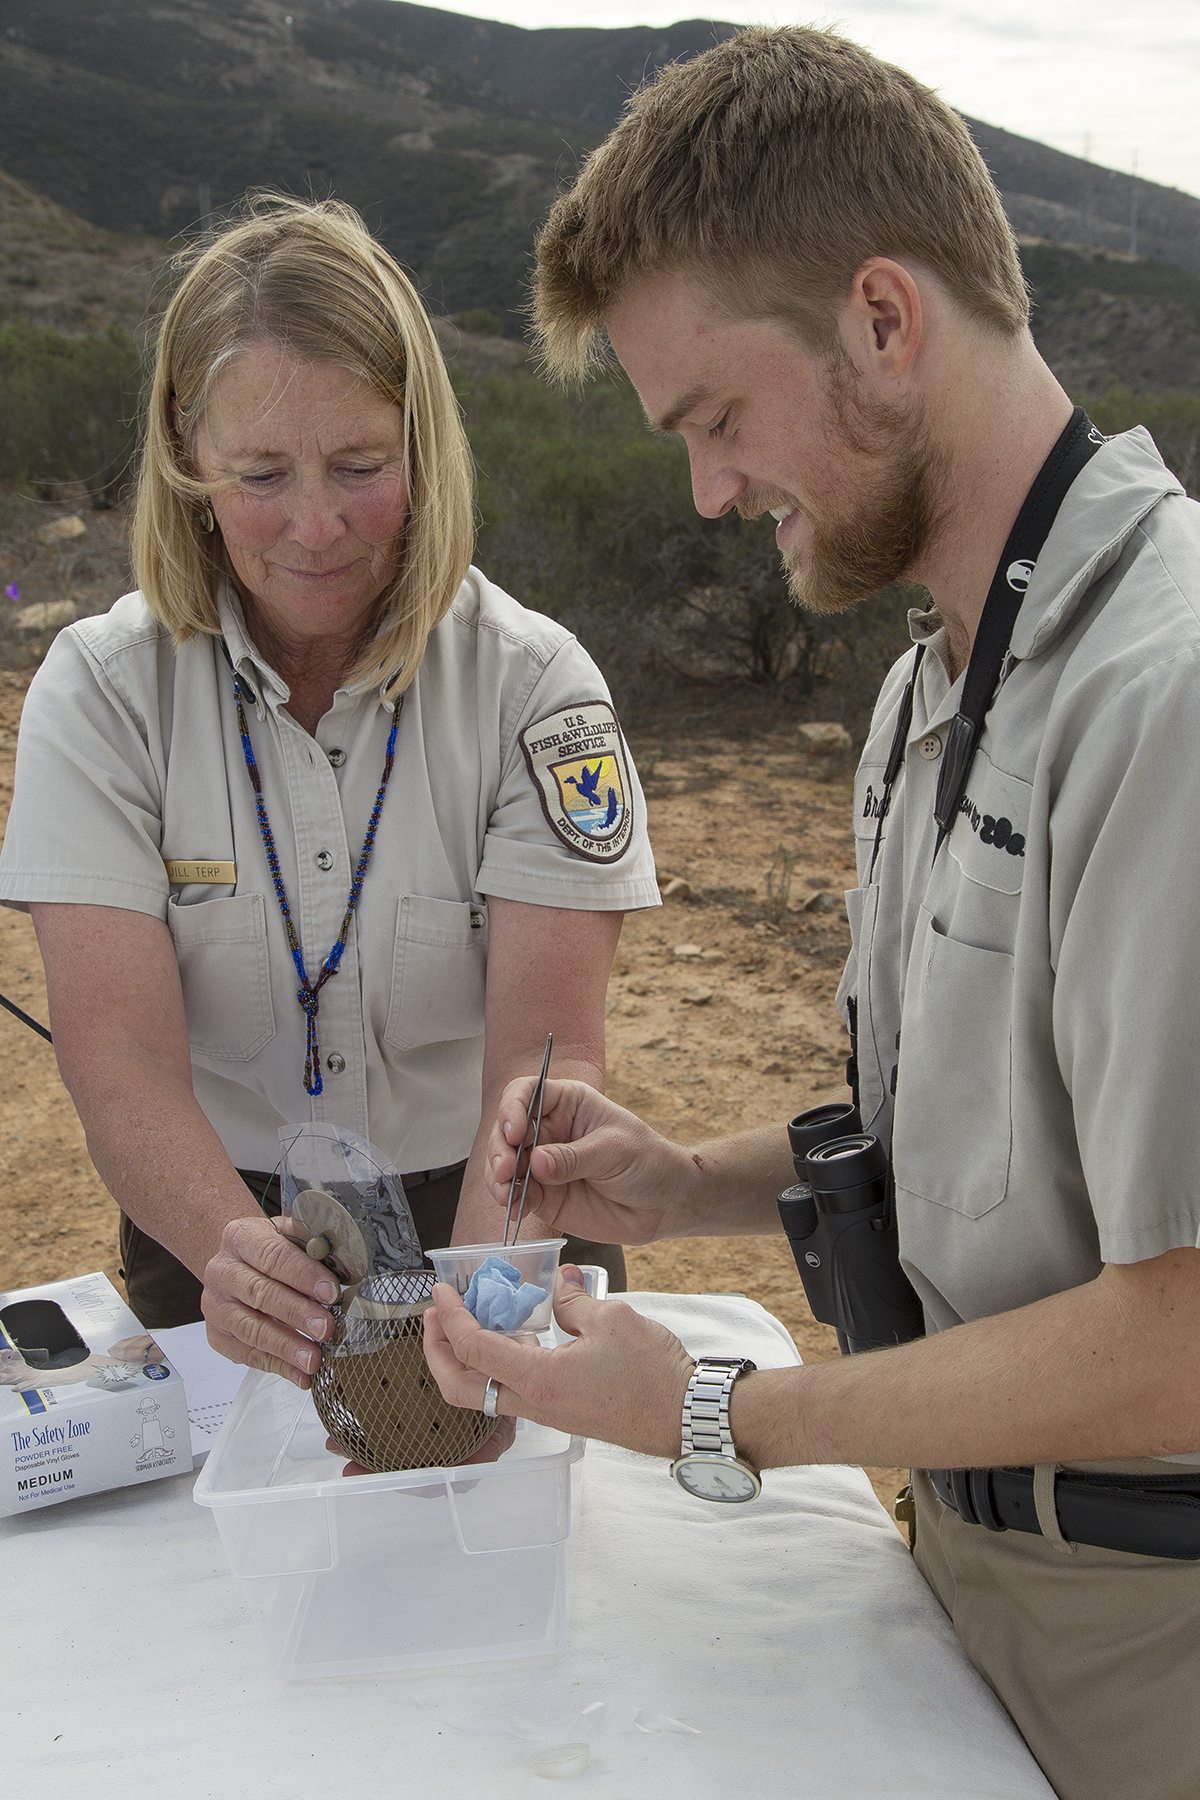 Biologists Release Endangered California Butterfly Larvae into Native Habitat